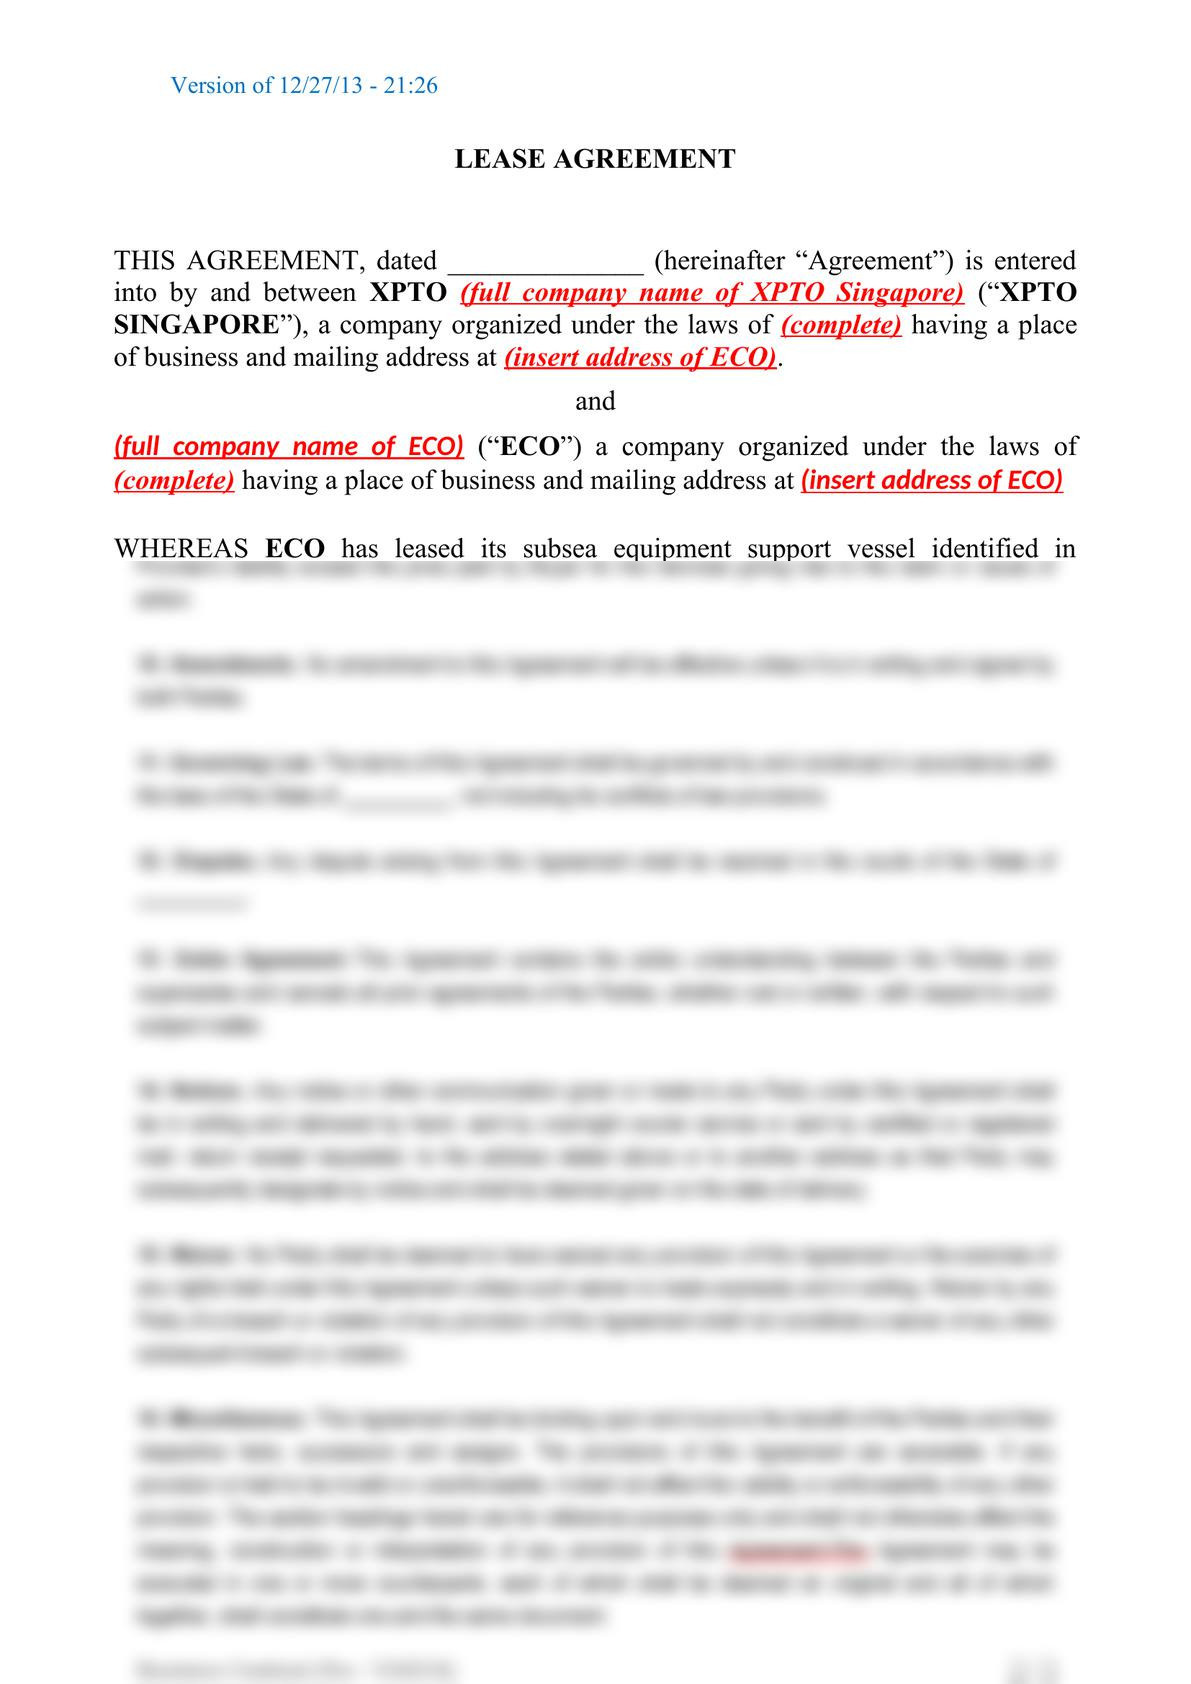 Subsea equipment lease agreement-0